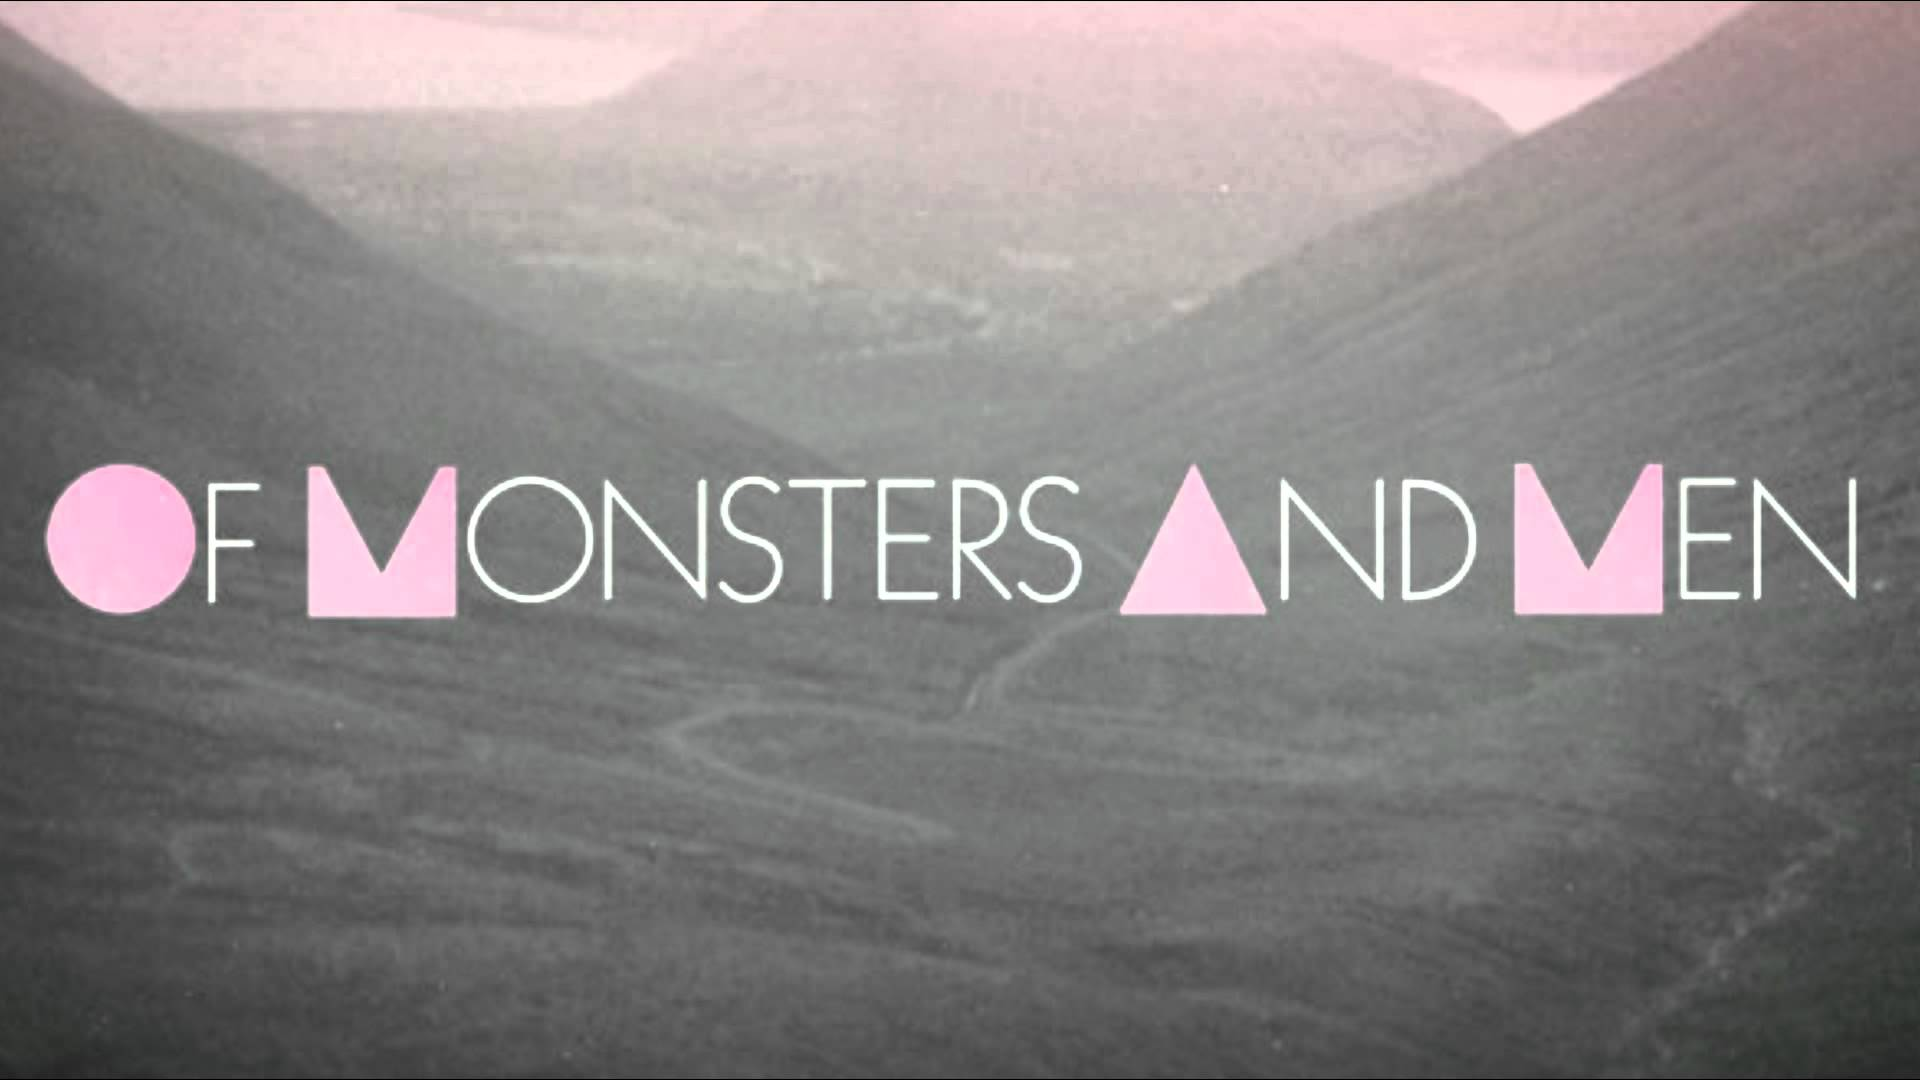 Of Monsters And Men Wallpapers Download 1621593 Hd Wallpaper